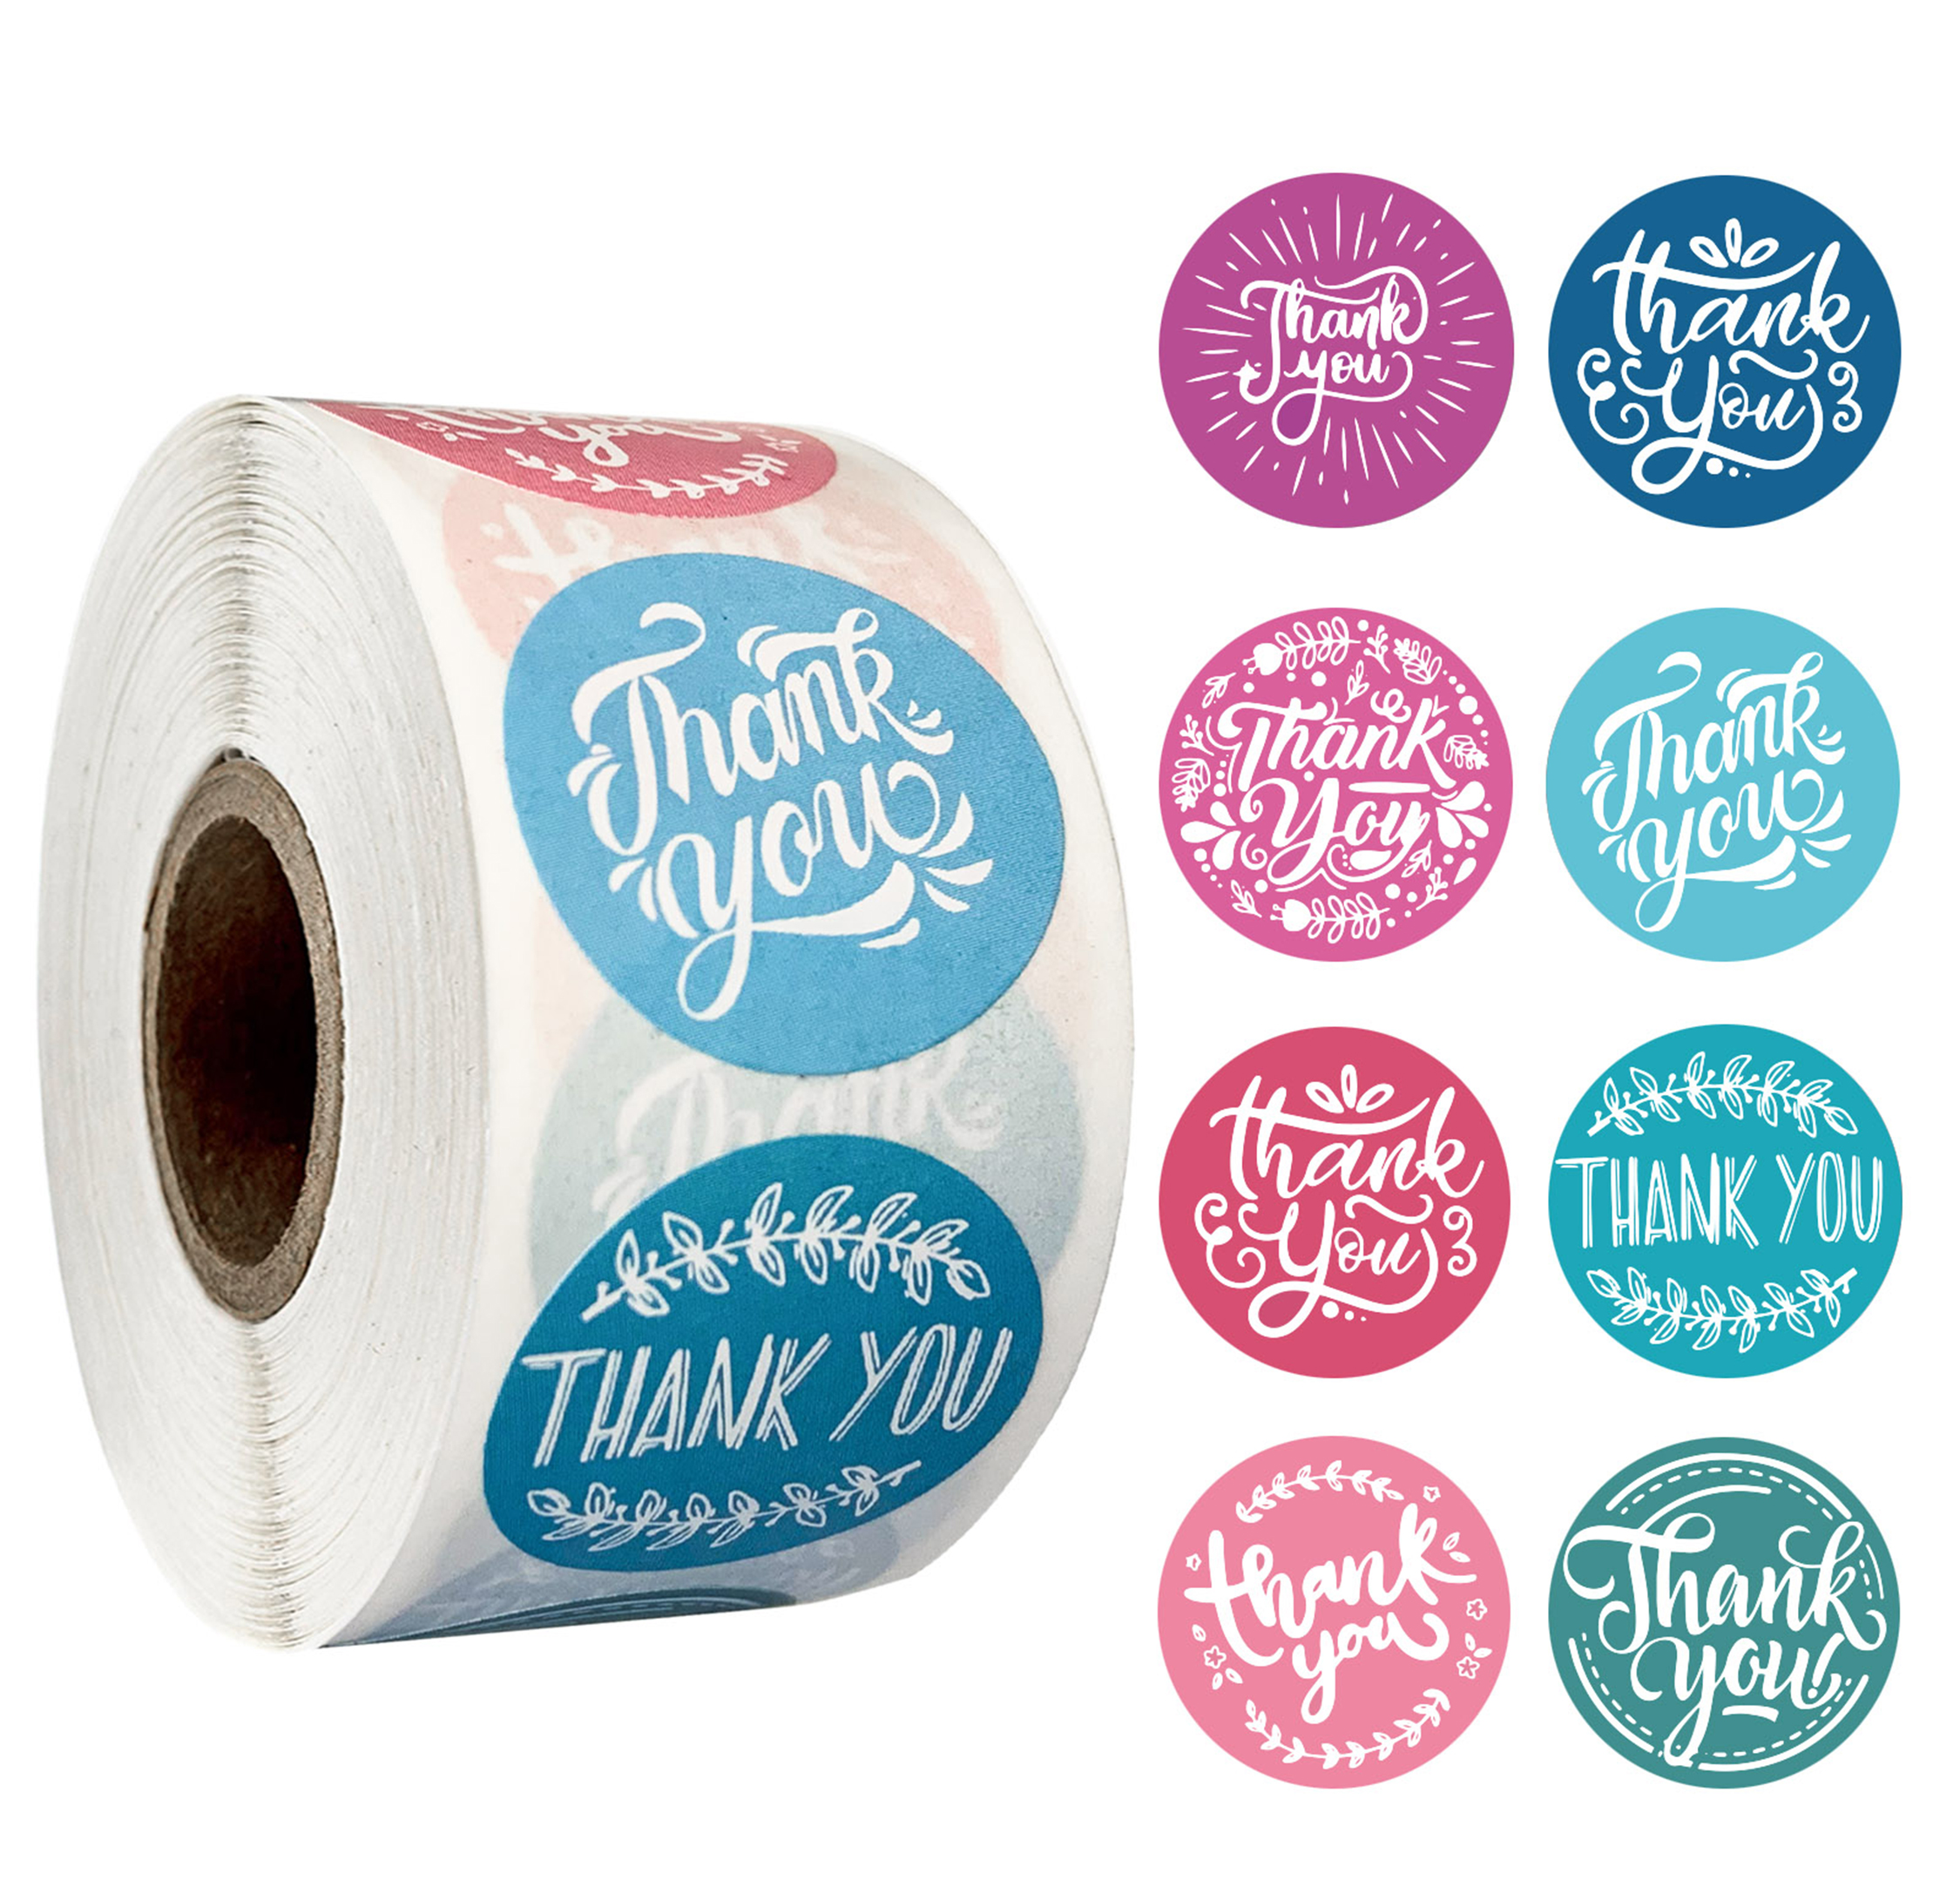 2 Roll Thank You Stickers 500 Labels Per Roll for Bubble Mailers /& Bags 8 Designs Thank You Sticker Roll Boutique Supplies for Business Packaging